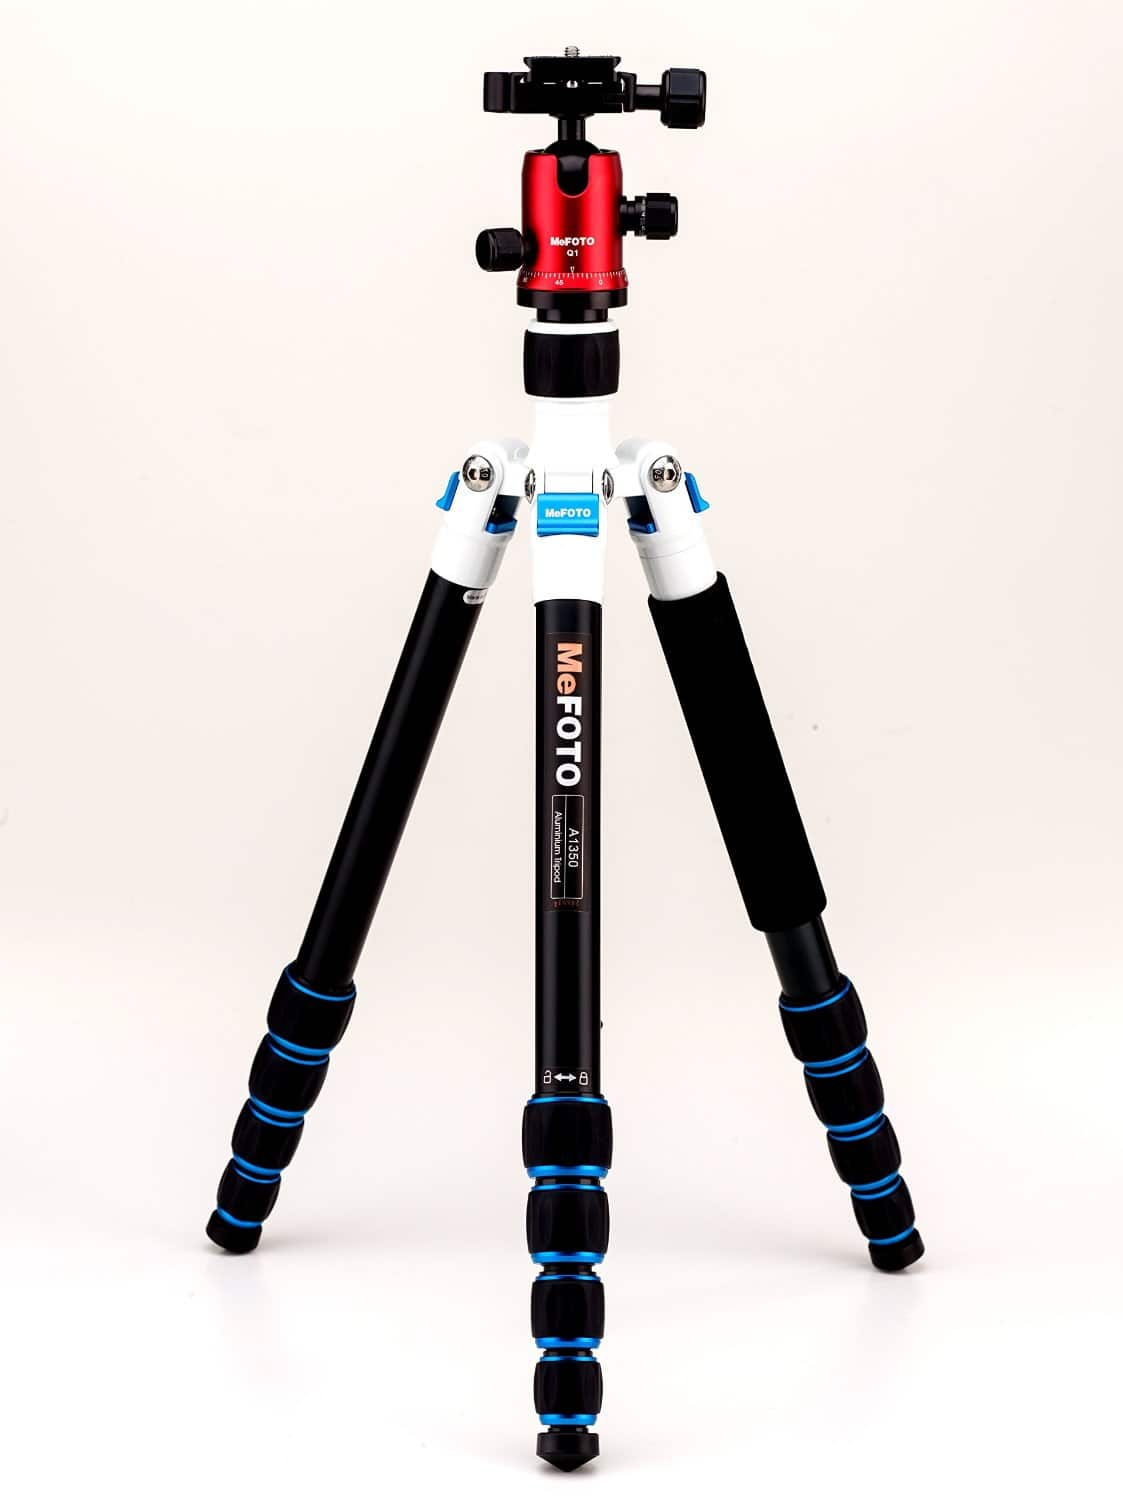 MeFoto RoadTrip Travel Tripod Special Limited Edition $100 + free shipping